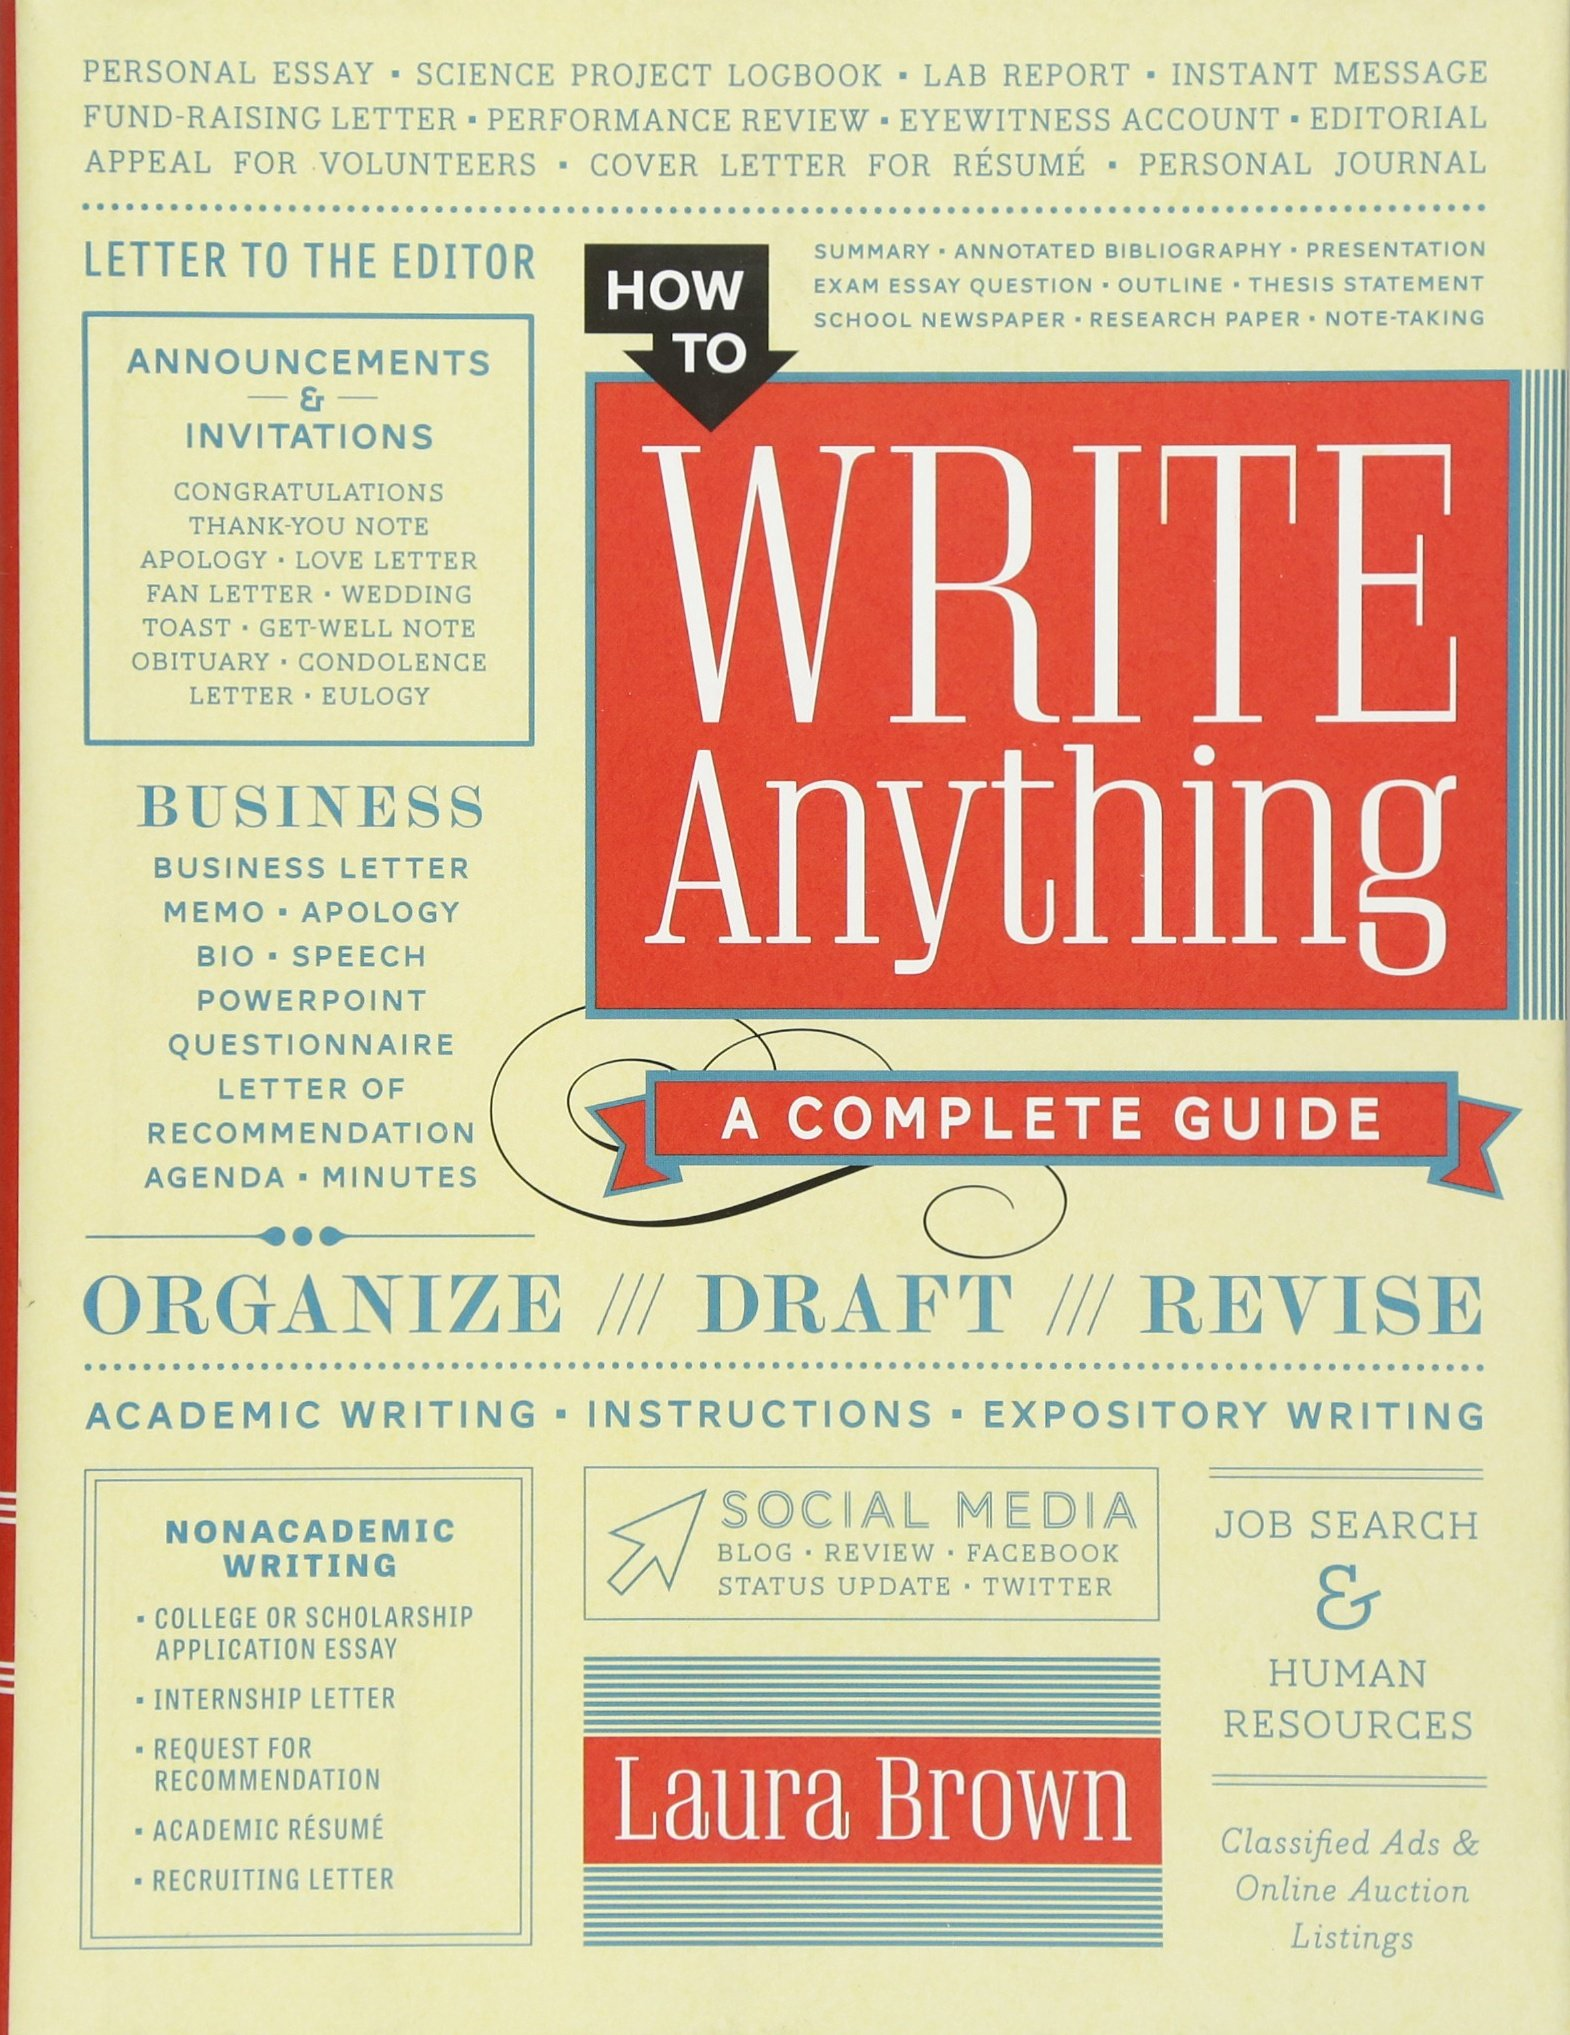 How to Write Anything: A Complete Guide: Amazon.es: Laura ...